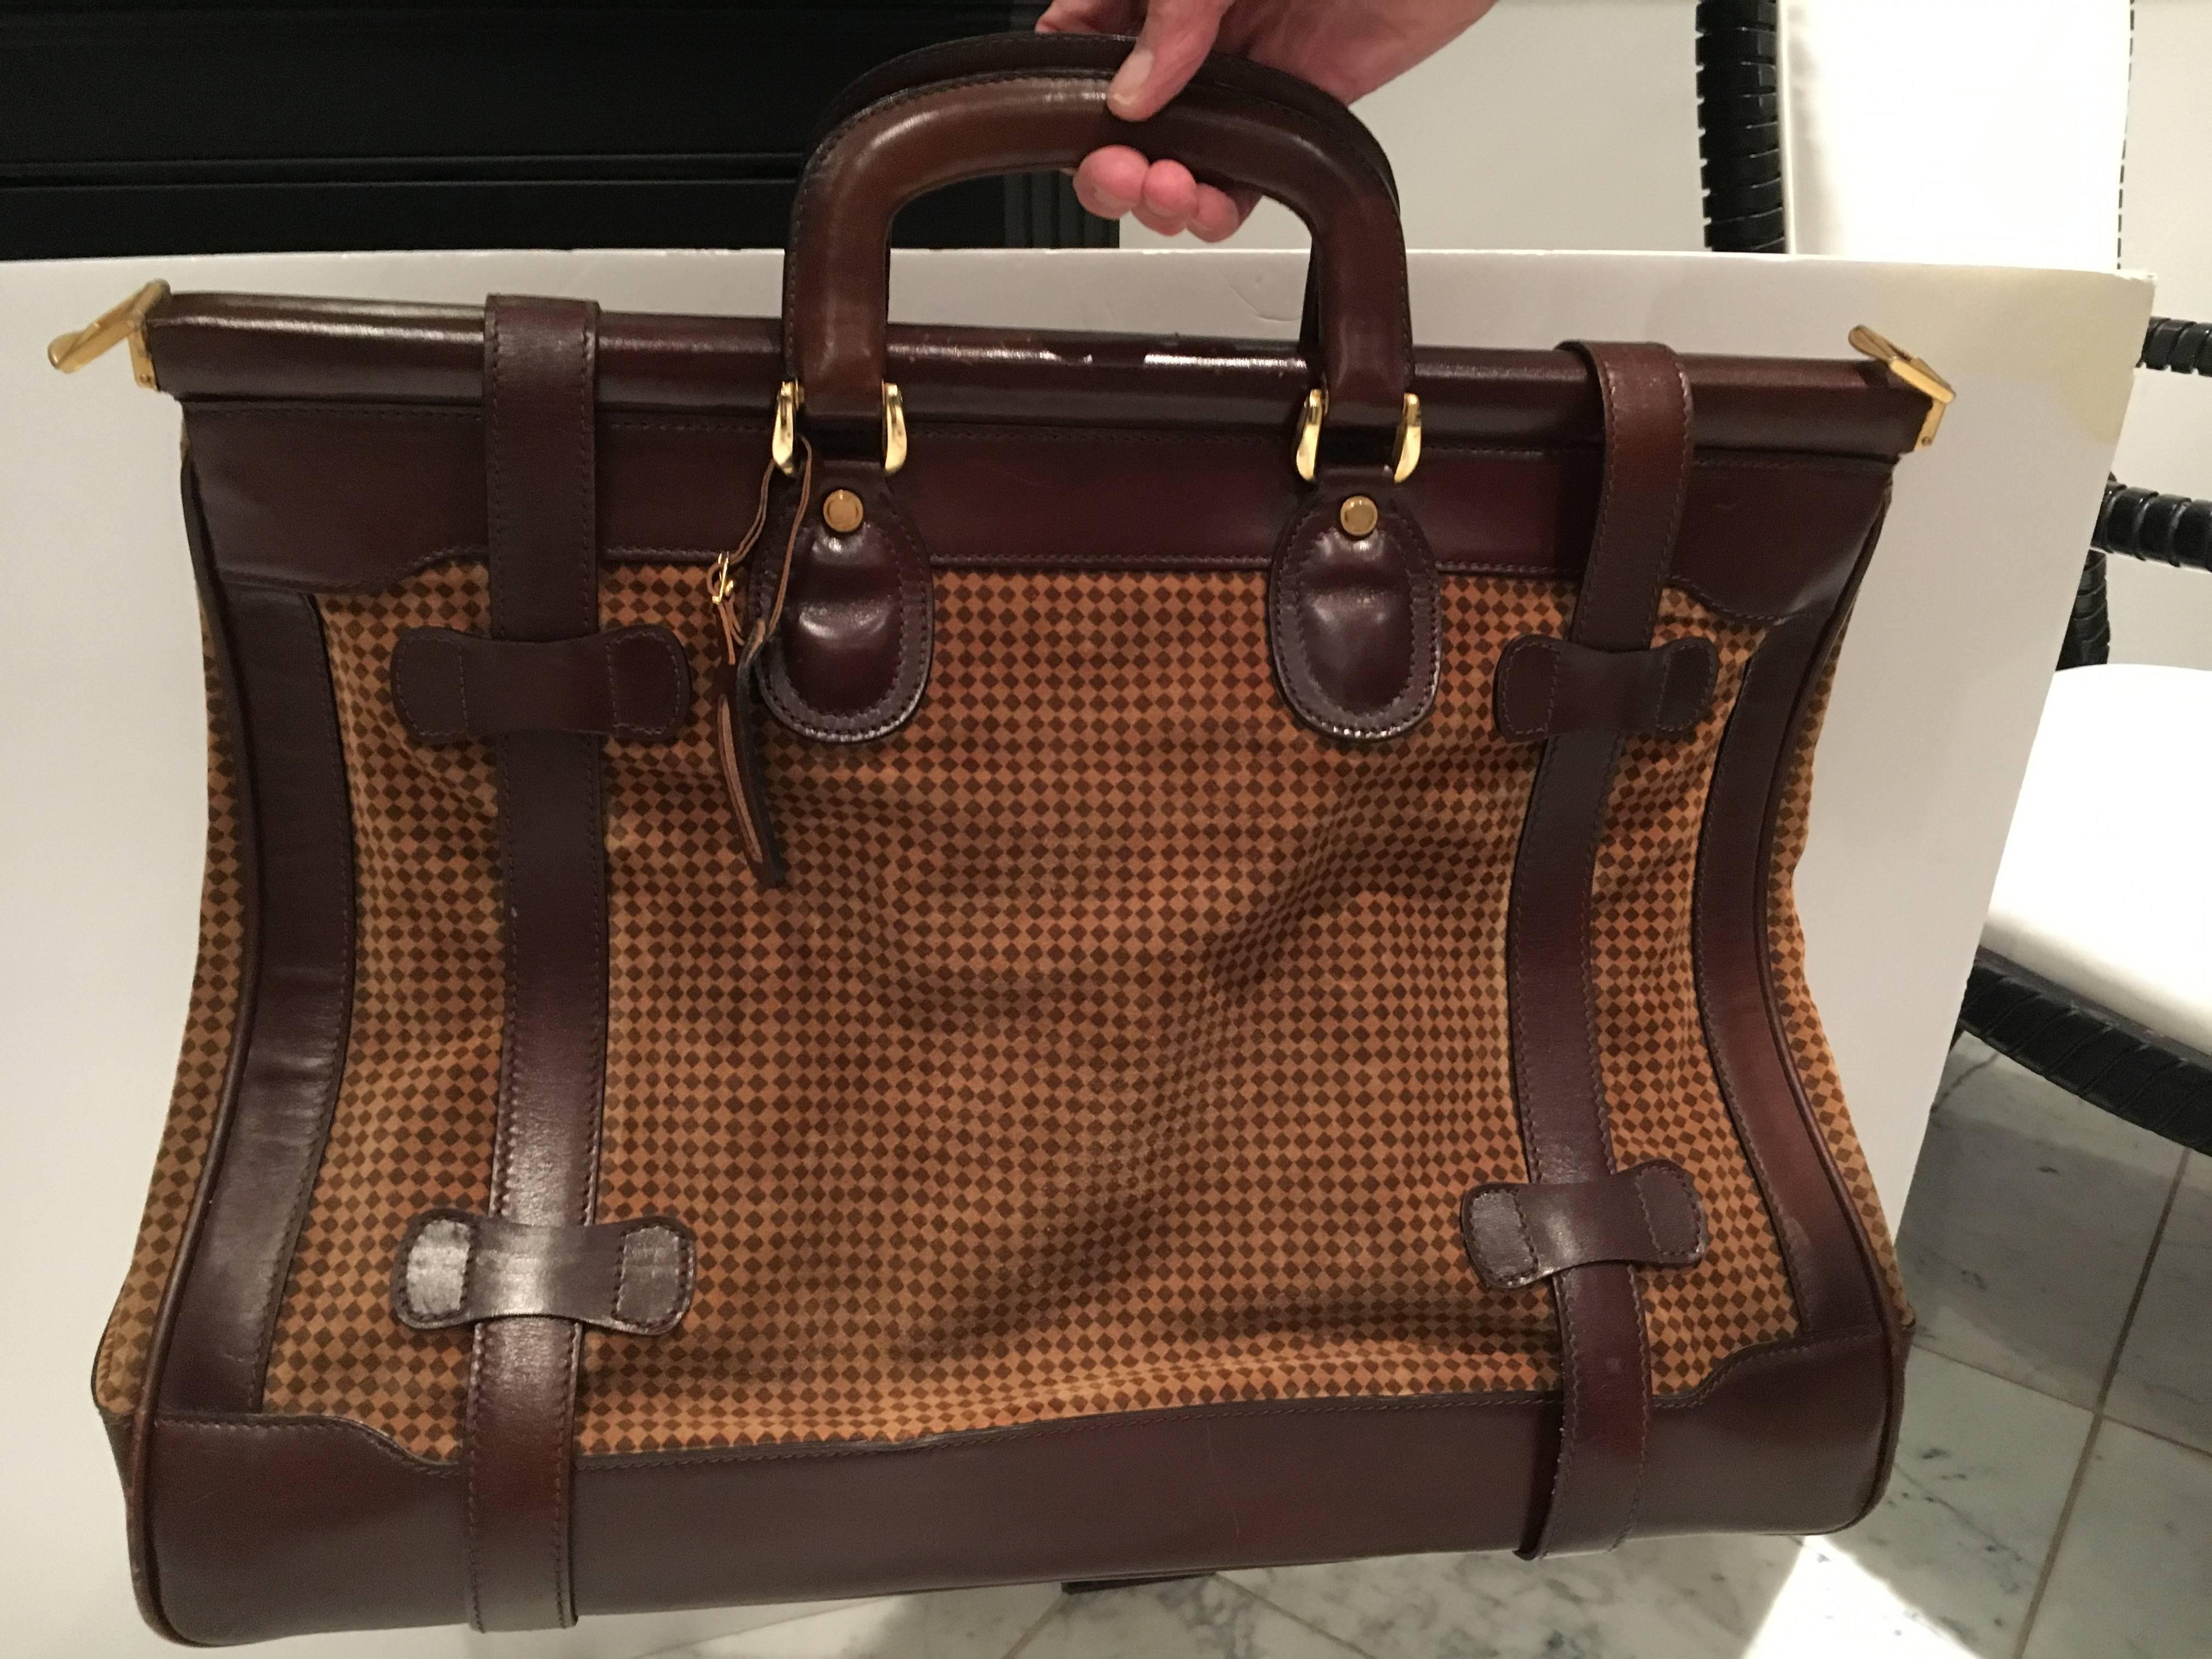 2900c290a1 Mint Condition Vintage Houndstooth and Leather Bottega Veneta Weekend Bag  For Sale at 1stdibs